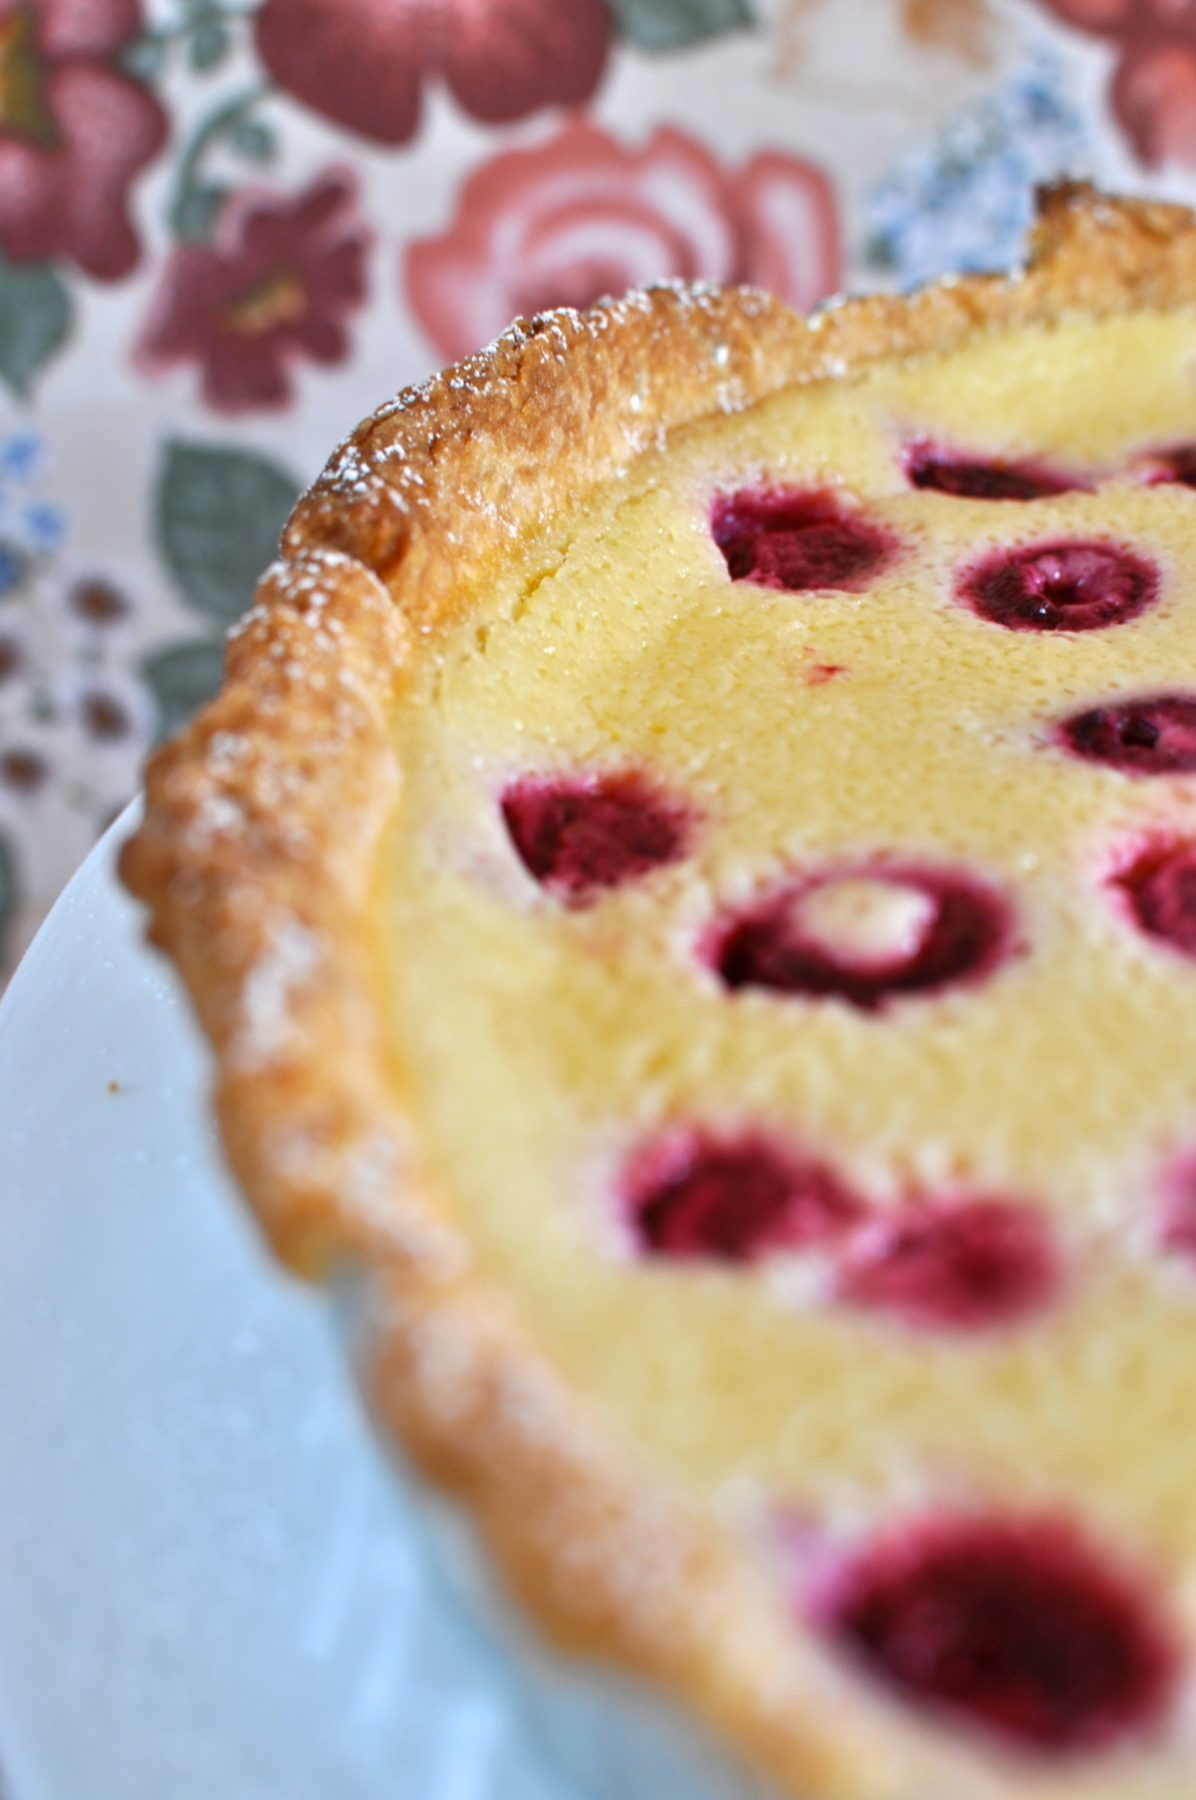 Raspberry and lemon buttermilk tart